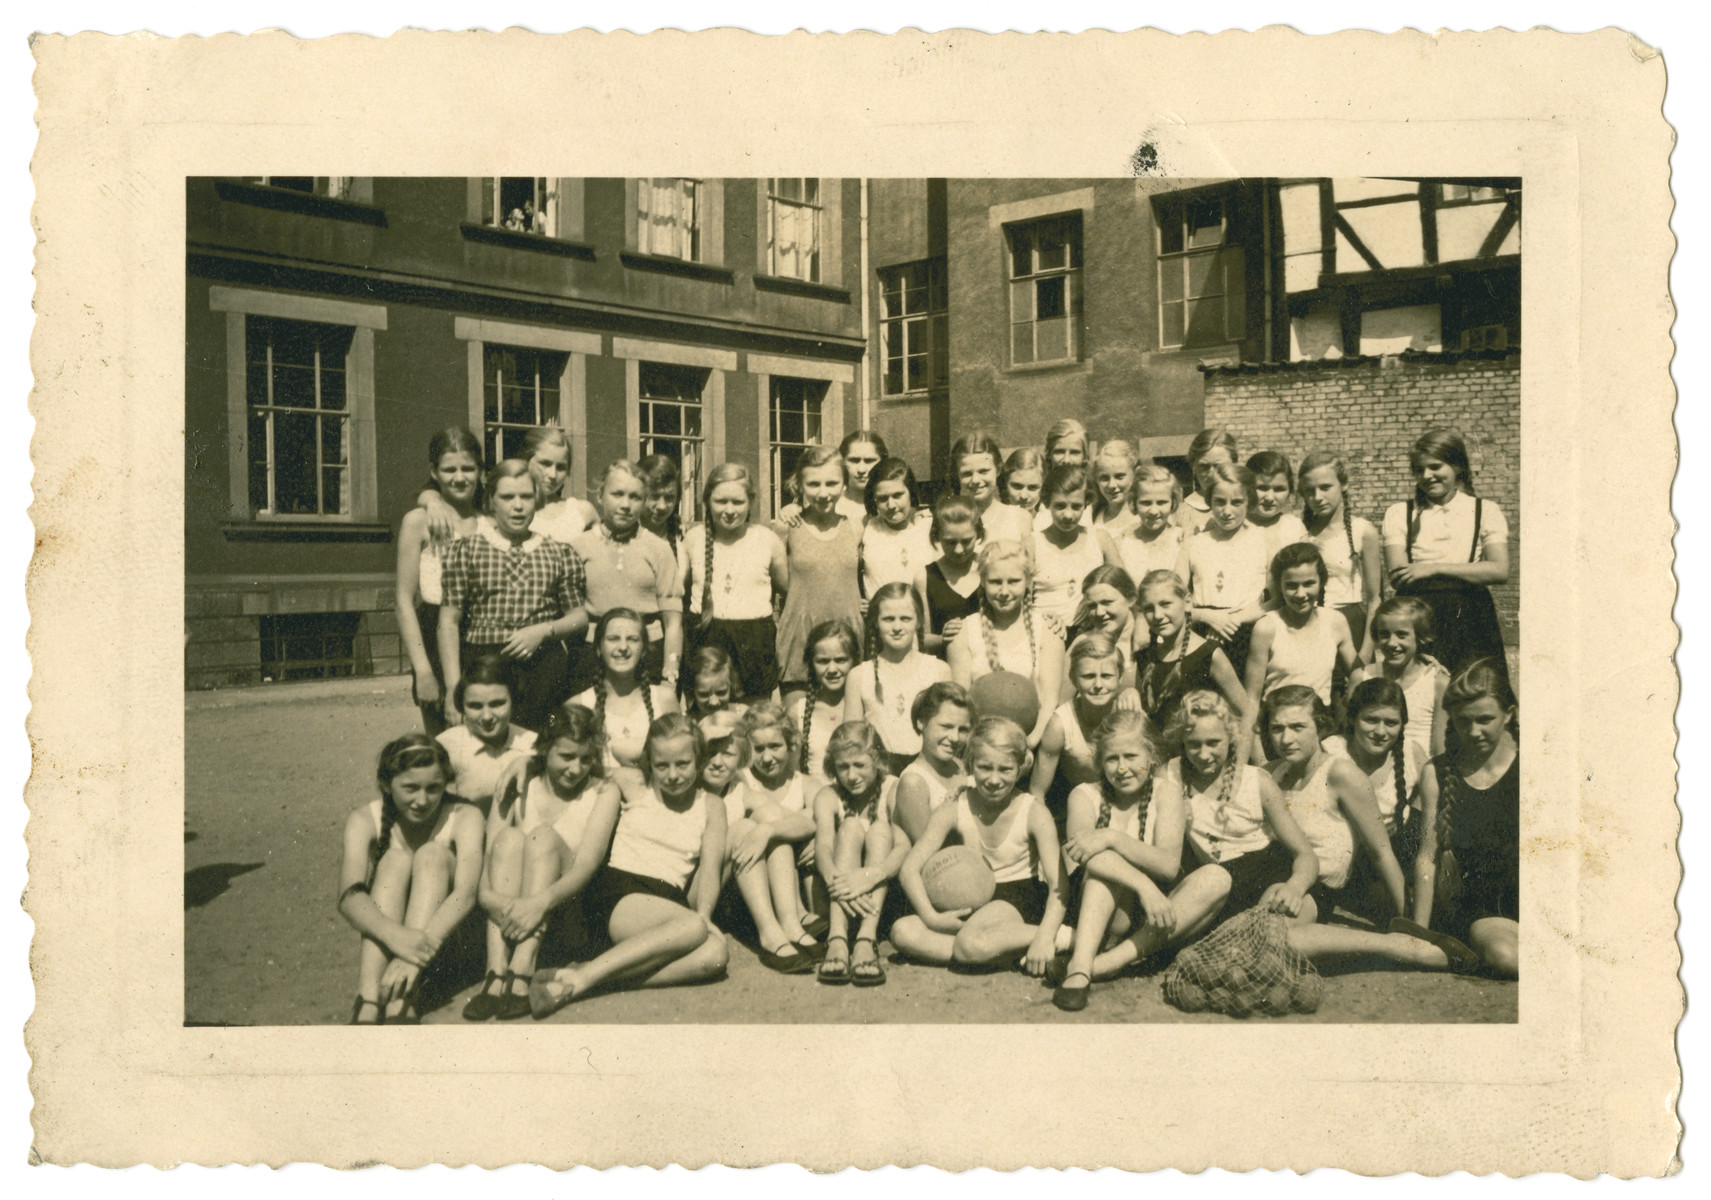 A group portrait of girls in a gymnasium schoool.   Doris Tager is in the first row (second from the left)